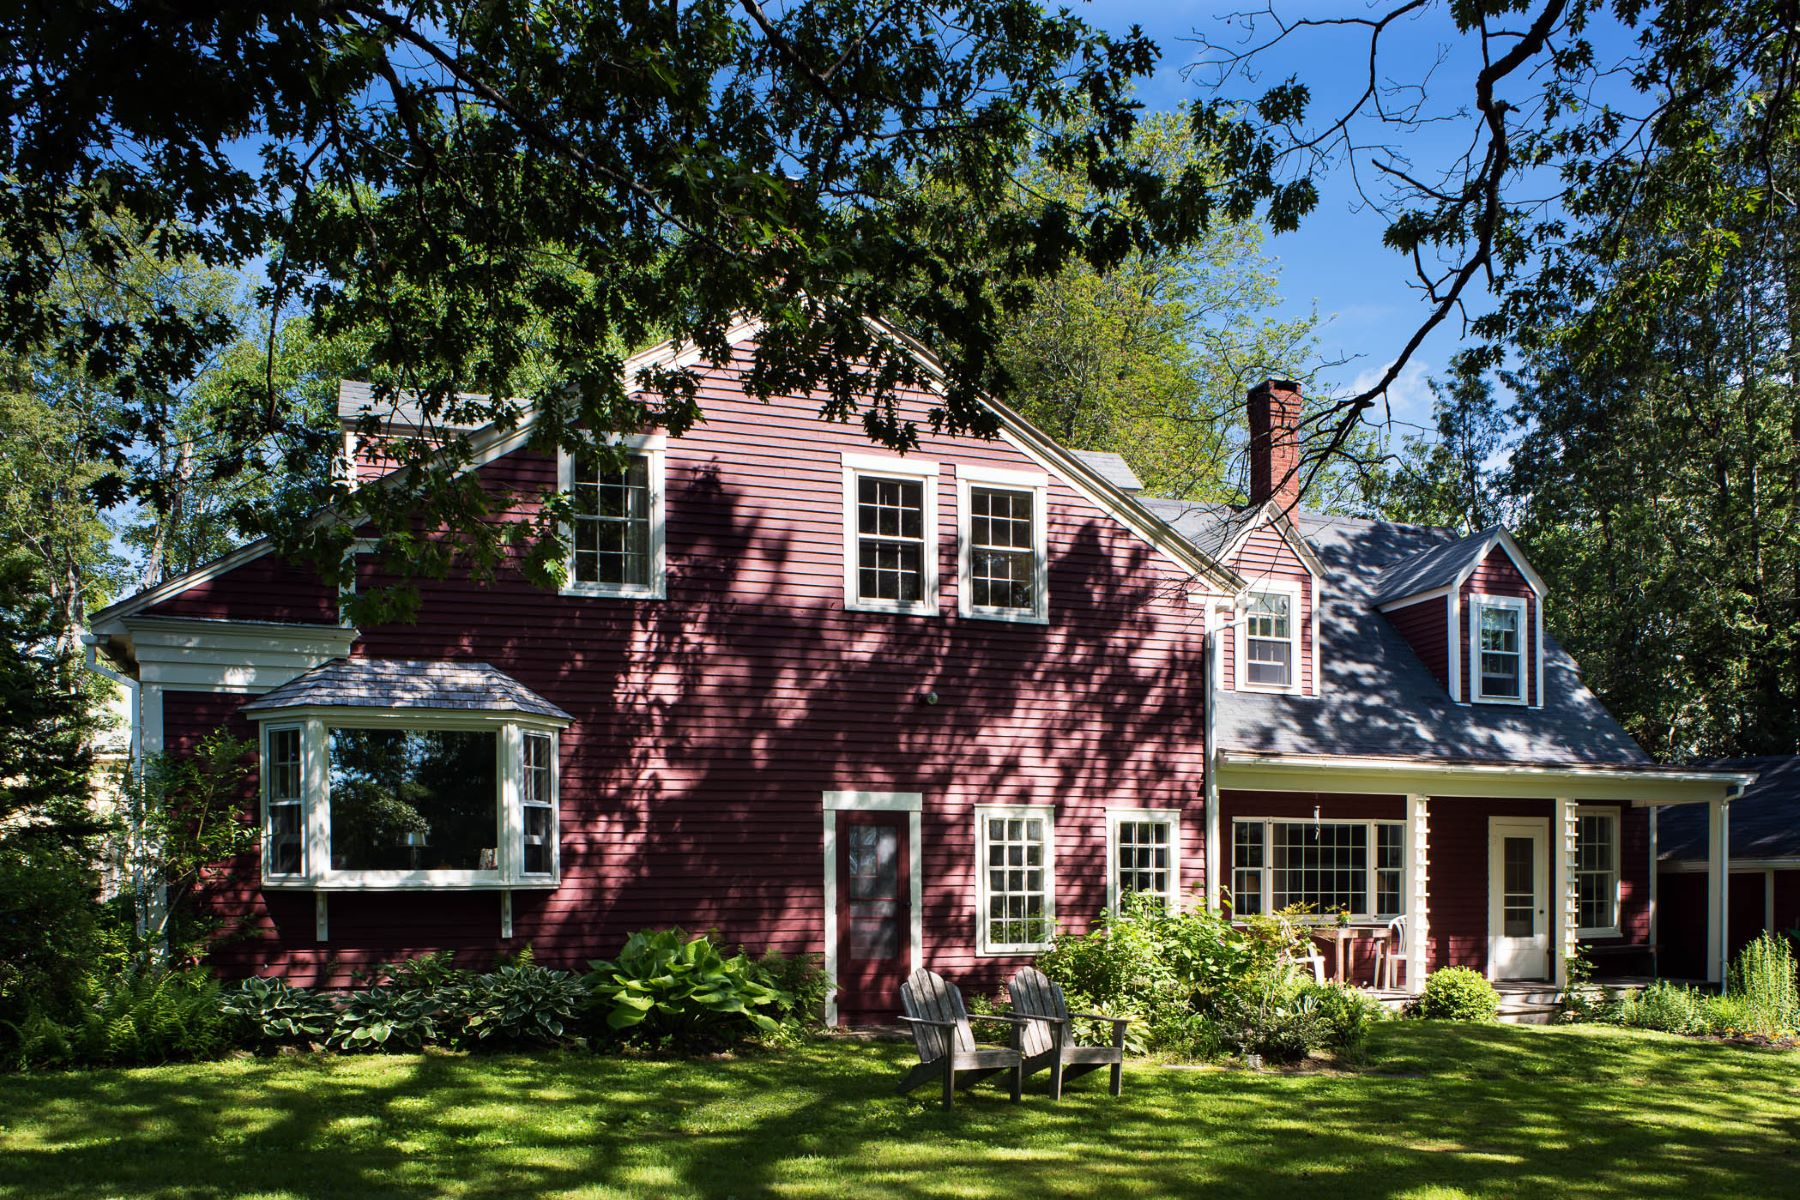 Single Family Home for Sale at 67 Glidden Street Newcastle, Maine 04553 United States